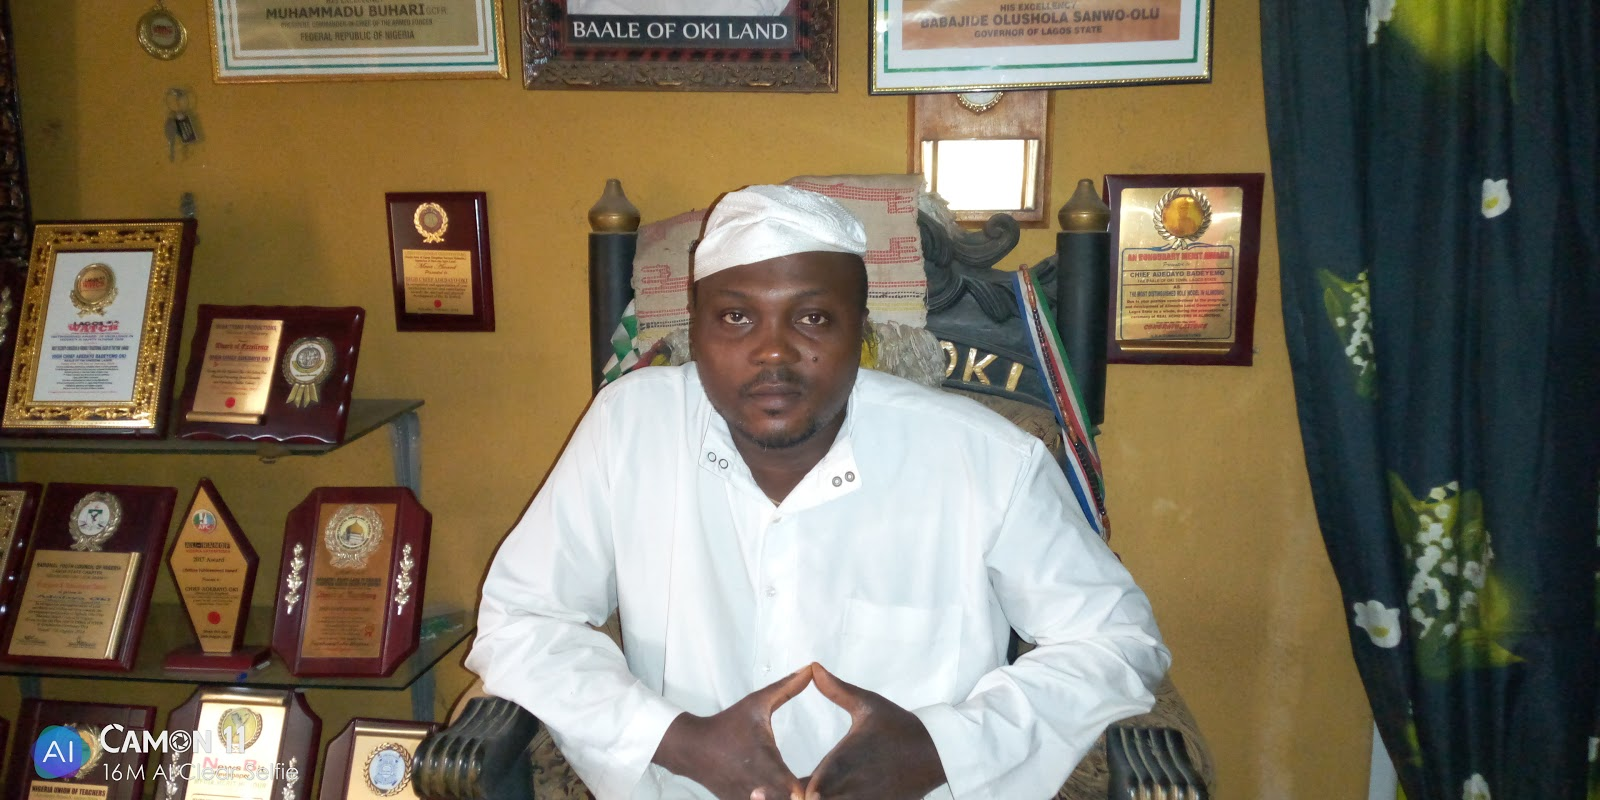 Amotekun,Solution to Insecurity Of Our Land-Baale Oki Kingdom